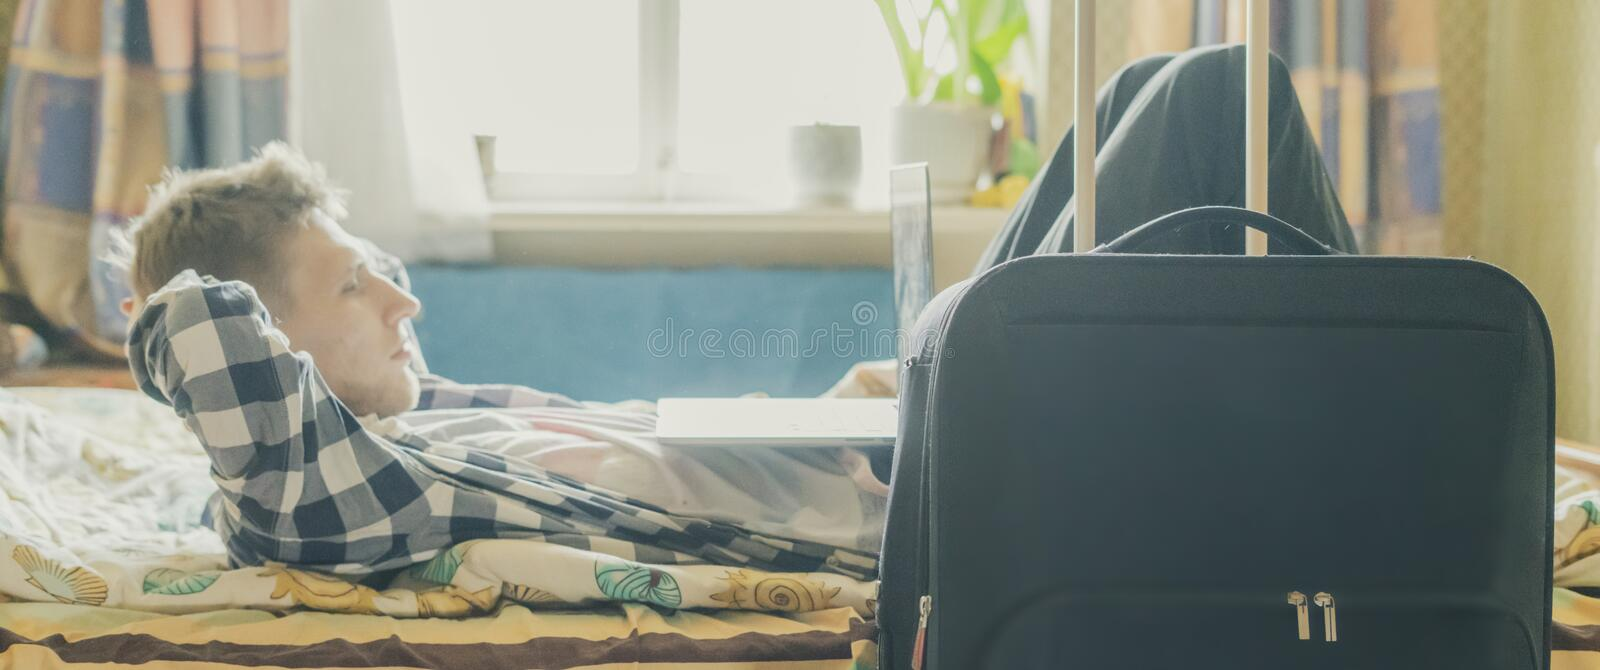 Traveling businessman have a rest in the hotel room, lying in the bed next to the luggage f. Traveling businessman have a rest in the hotel room, lying in the royalty free stock image